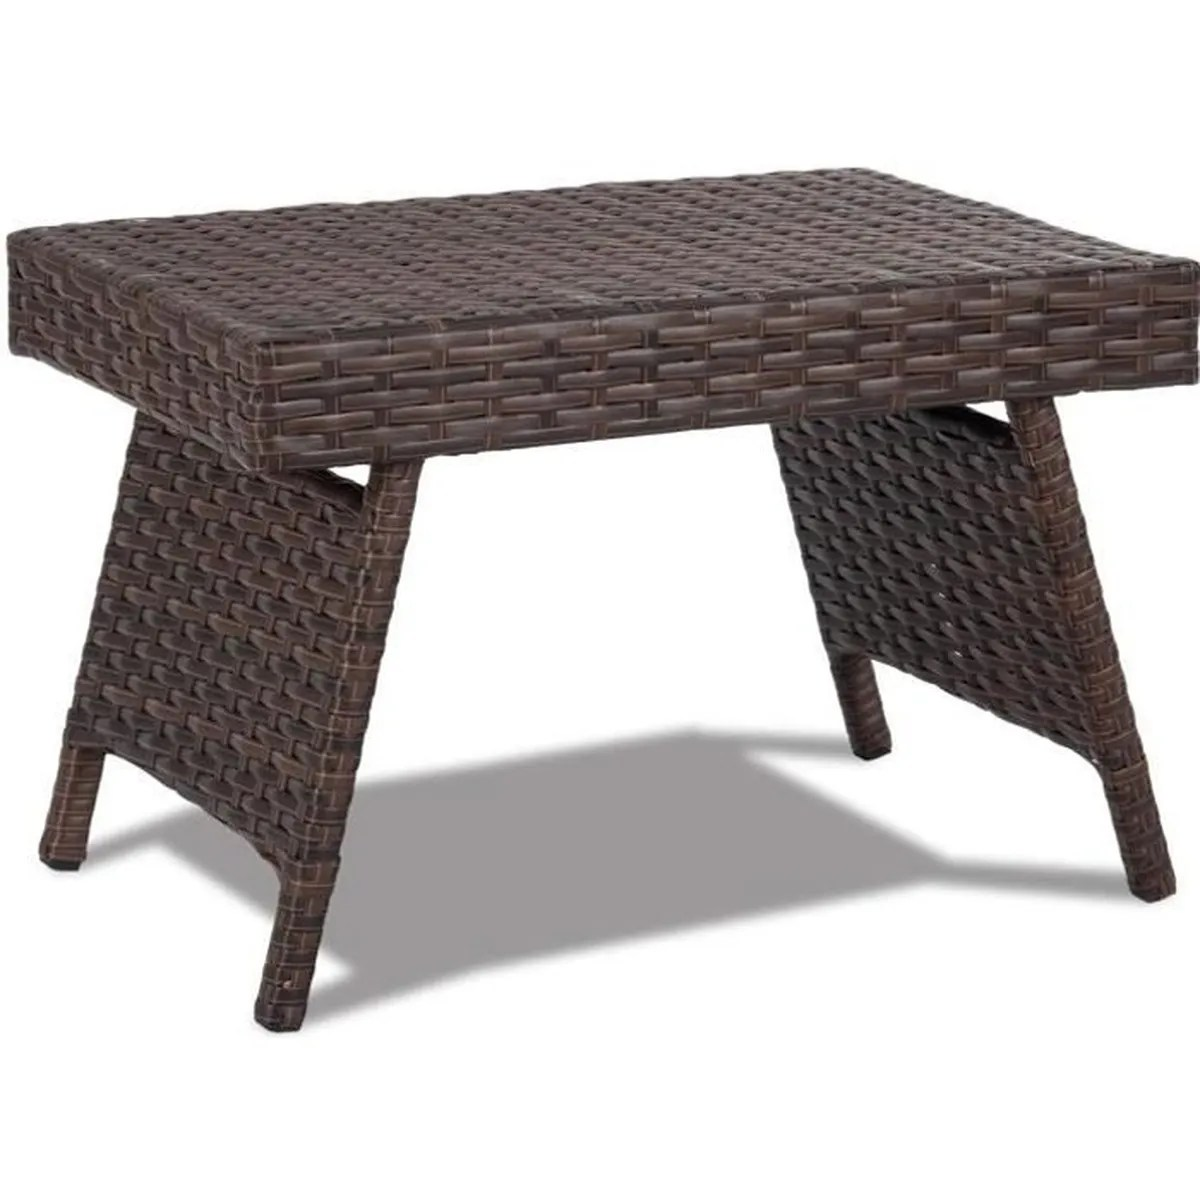 Tables De Salon En Rotin Table Basse De Table Thé Table Pliante Table En Osier Jardin Table